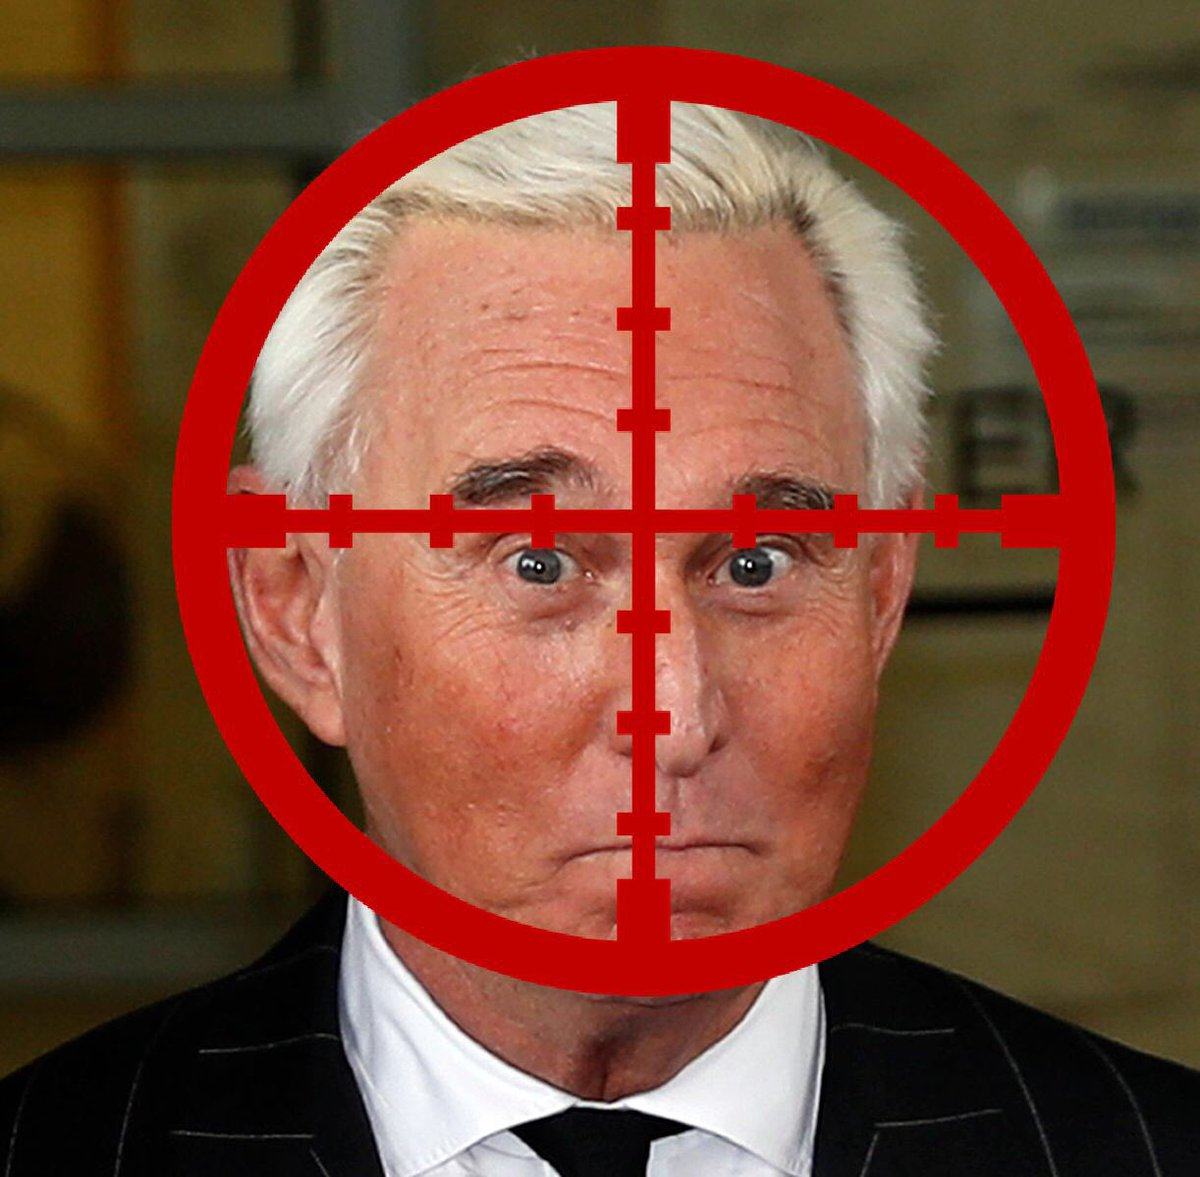 Muller has you in his sights. Asshole. #RogerStone #LockHimUp <br>http://pic.twitter.com/hzZD2XbstZ